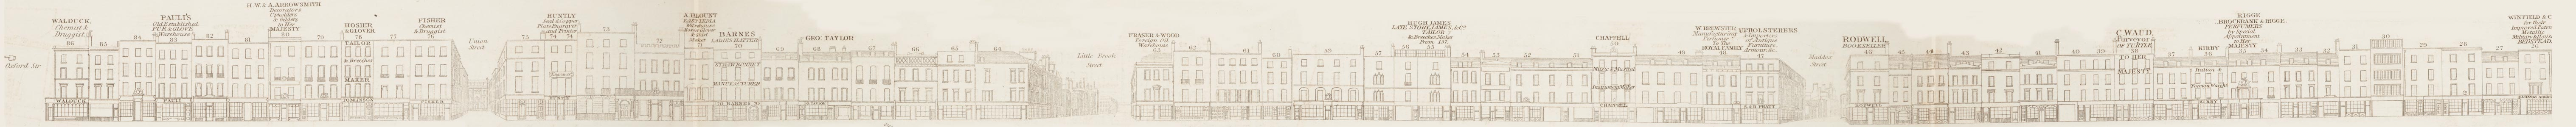 map - Tallis's London street views : No. 9. New Bond Street, division 2 (east)